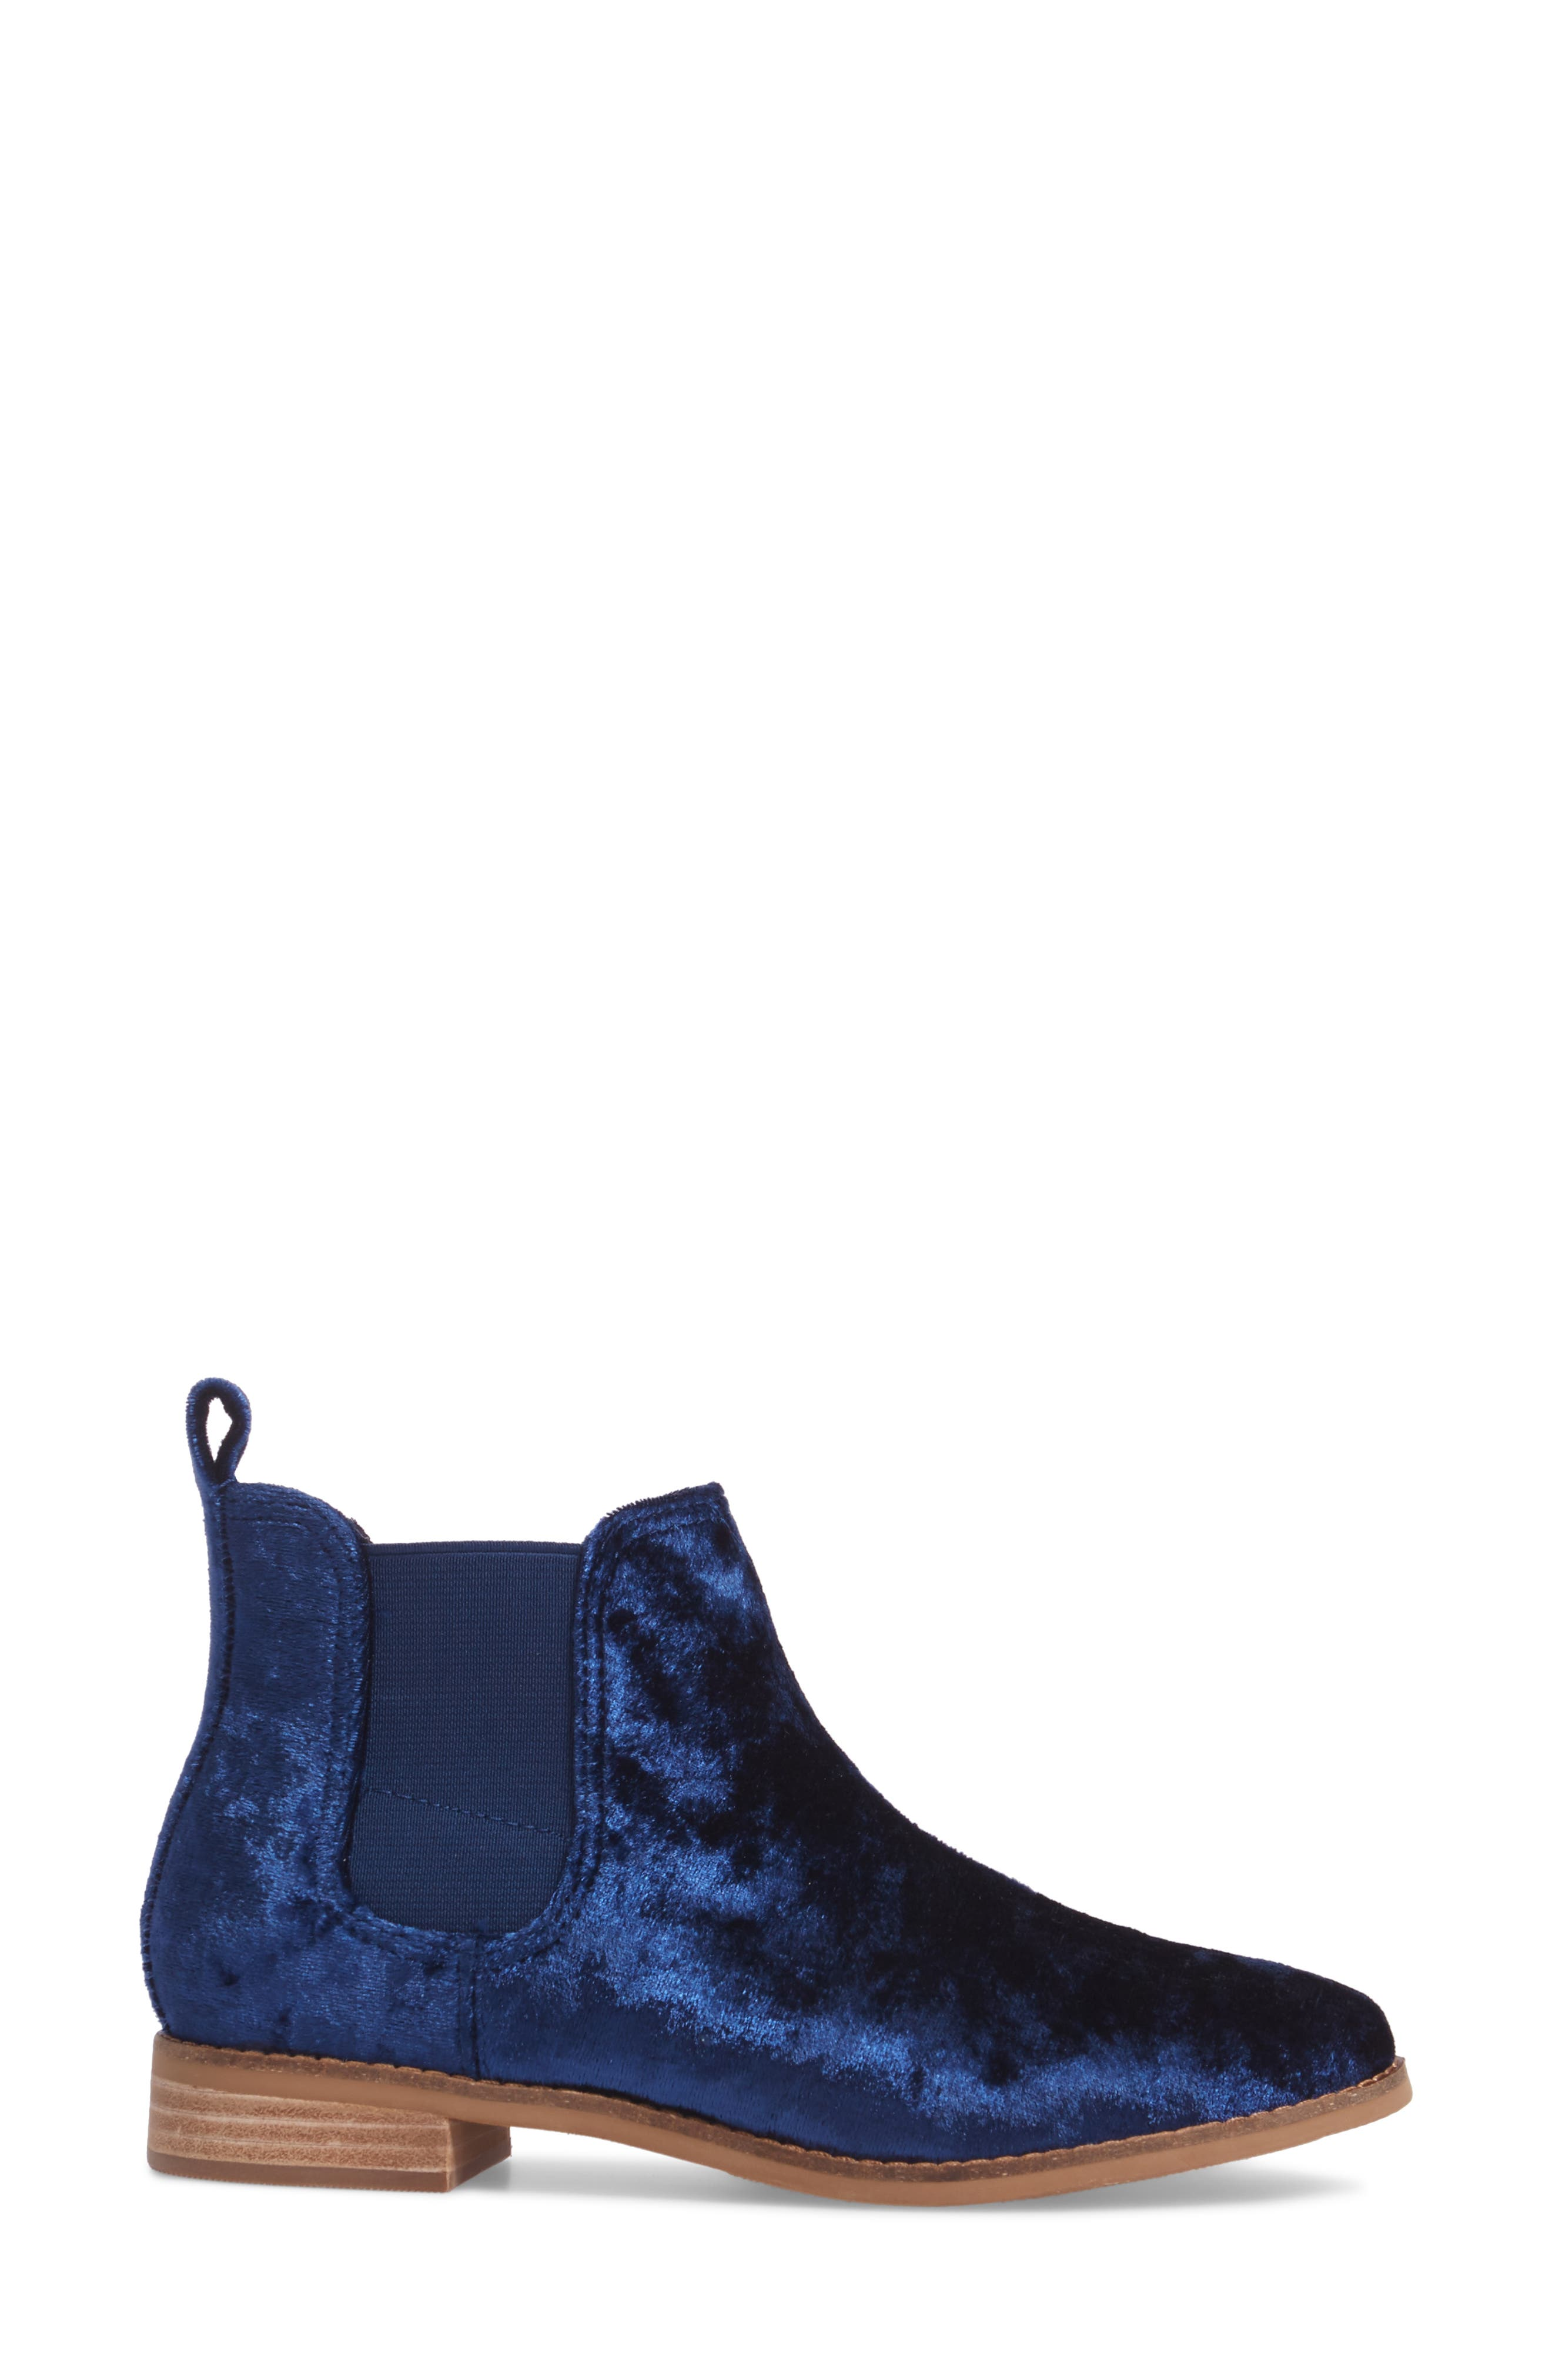 Ella Bootie,                             Alternate thumbnail 3, color,                             Navy Fabric